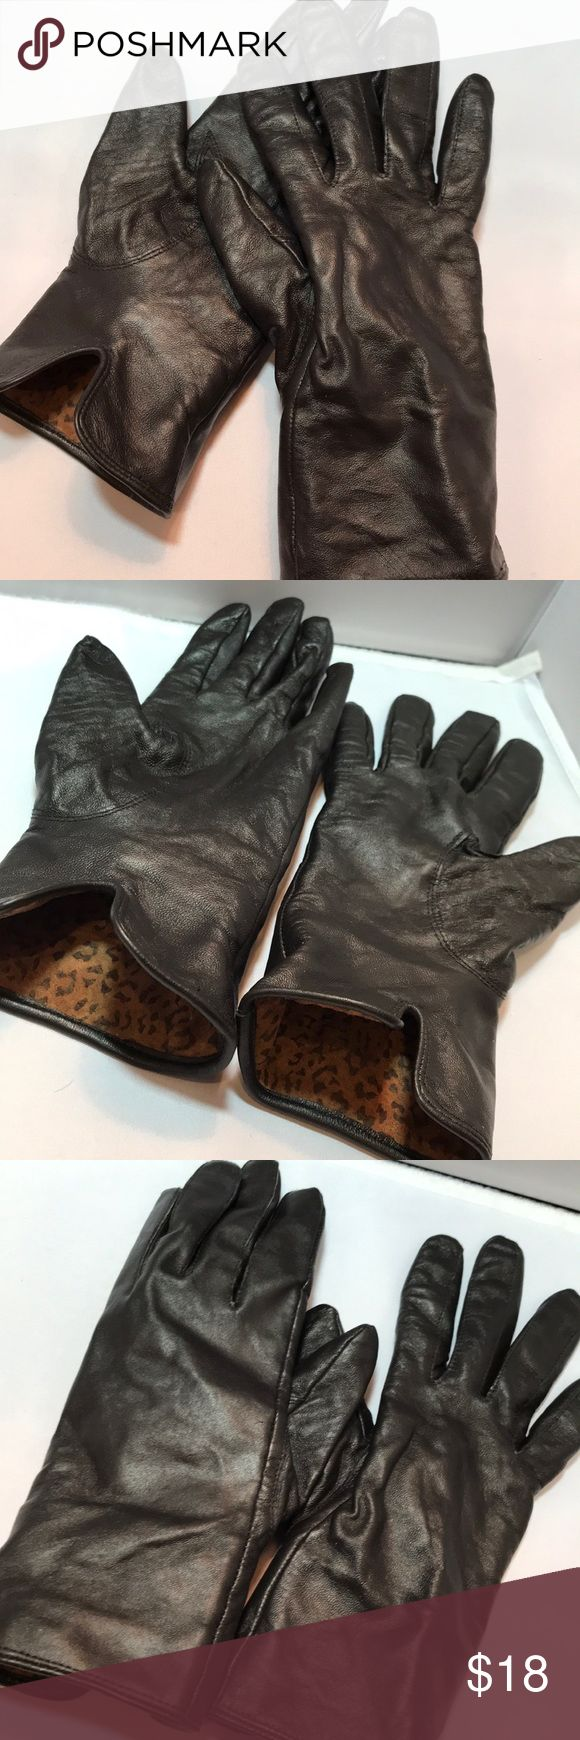 Black leather gloves lined in soft warm fabric Lower 1/3 interior of glove lined with animal print leather   No brand tag found but these appear to be well-made gloves   Leather not buttery soft ... more of a firm durable medium soft feel   I wear large ladies gloves and these are too tight on me ... medium size  Very good condition   Will keep your hands nice and warm Accessories Gloves & Mittens